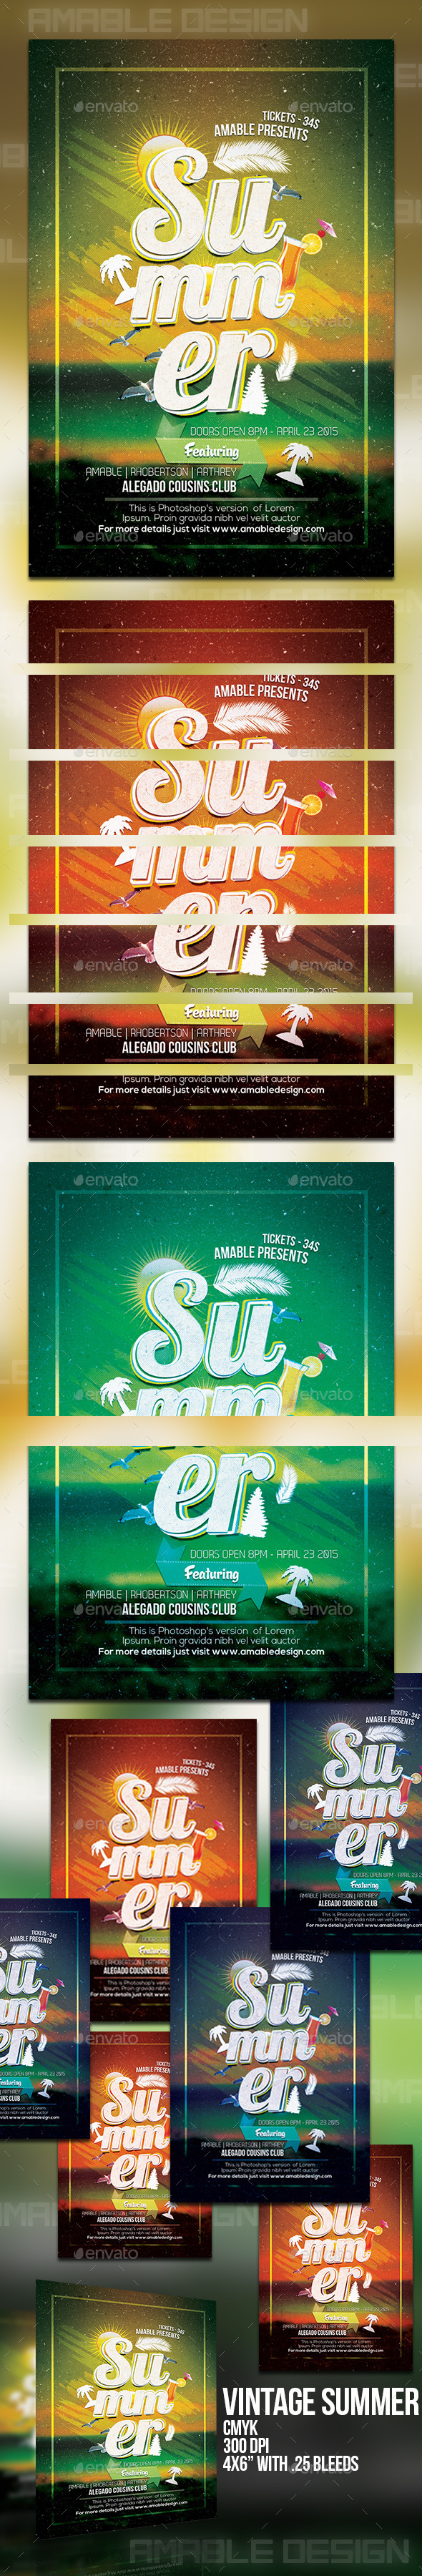 GraphicRiver Vintage Summer Flyer 10484554